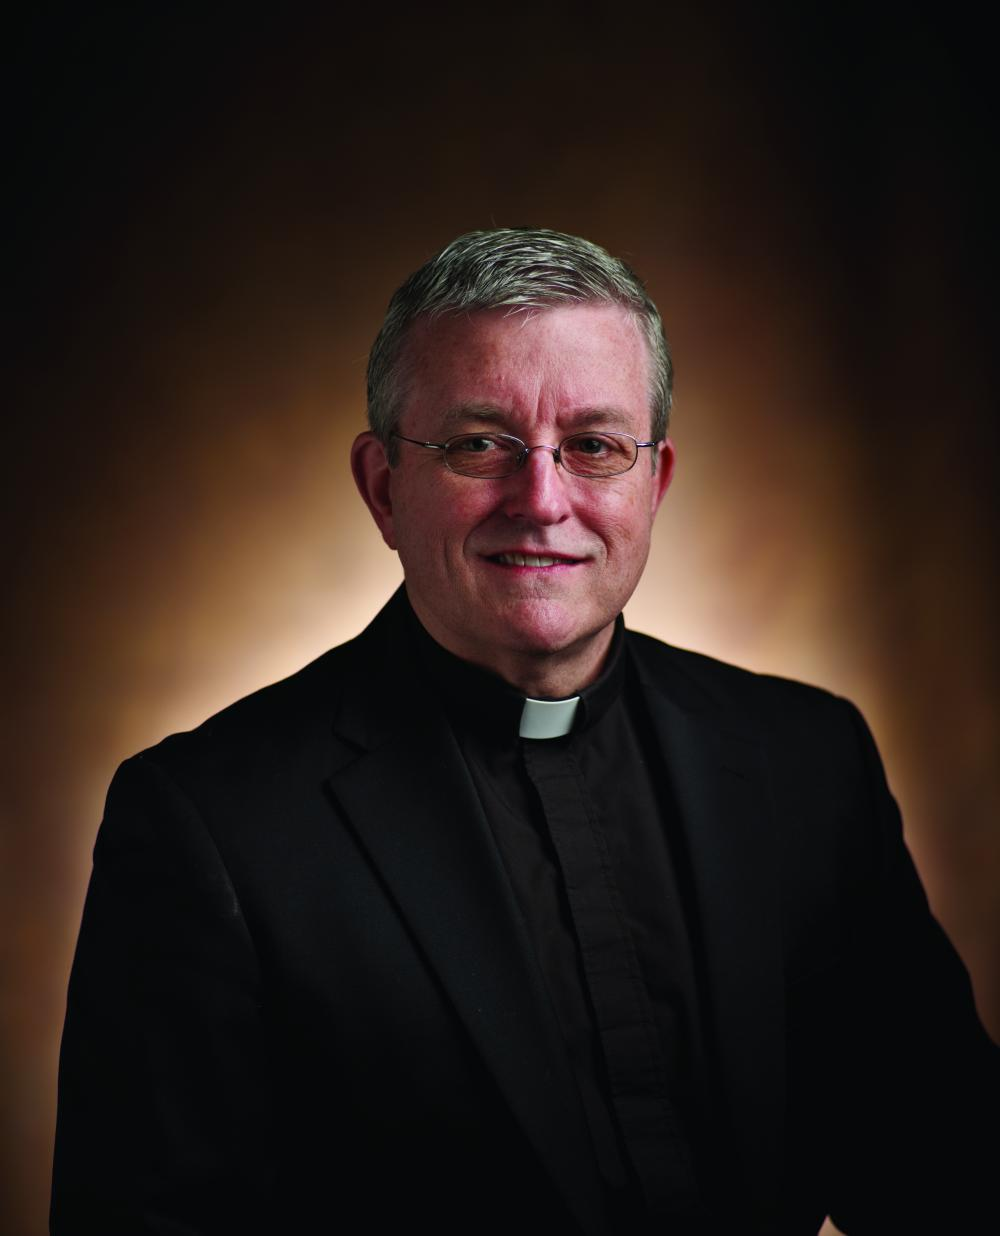 A Conversation with Father David Rosenberg, New Director of the St. Francis Retreat Center